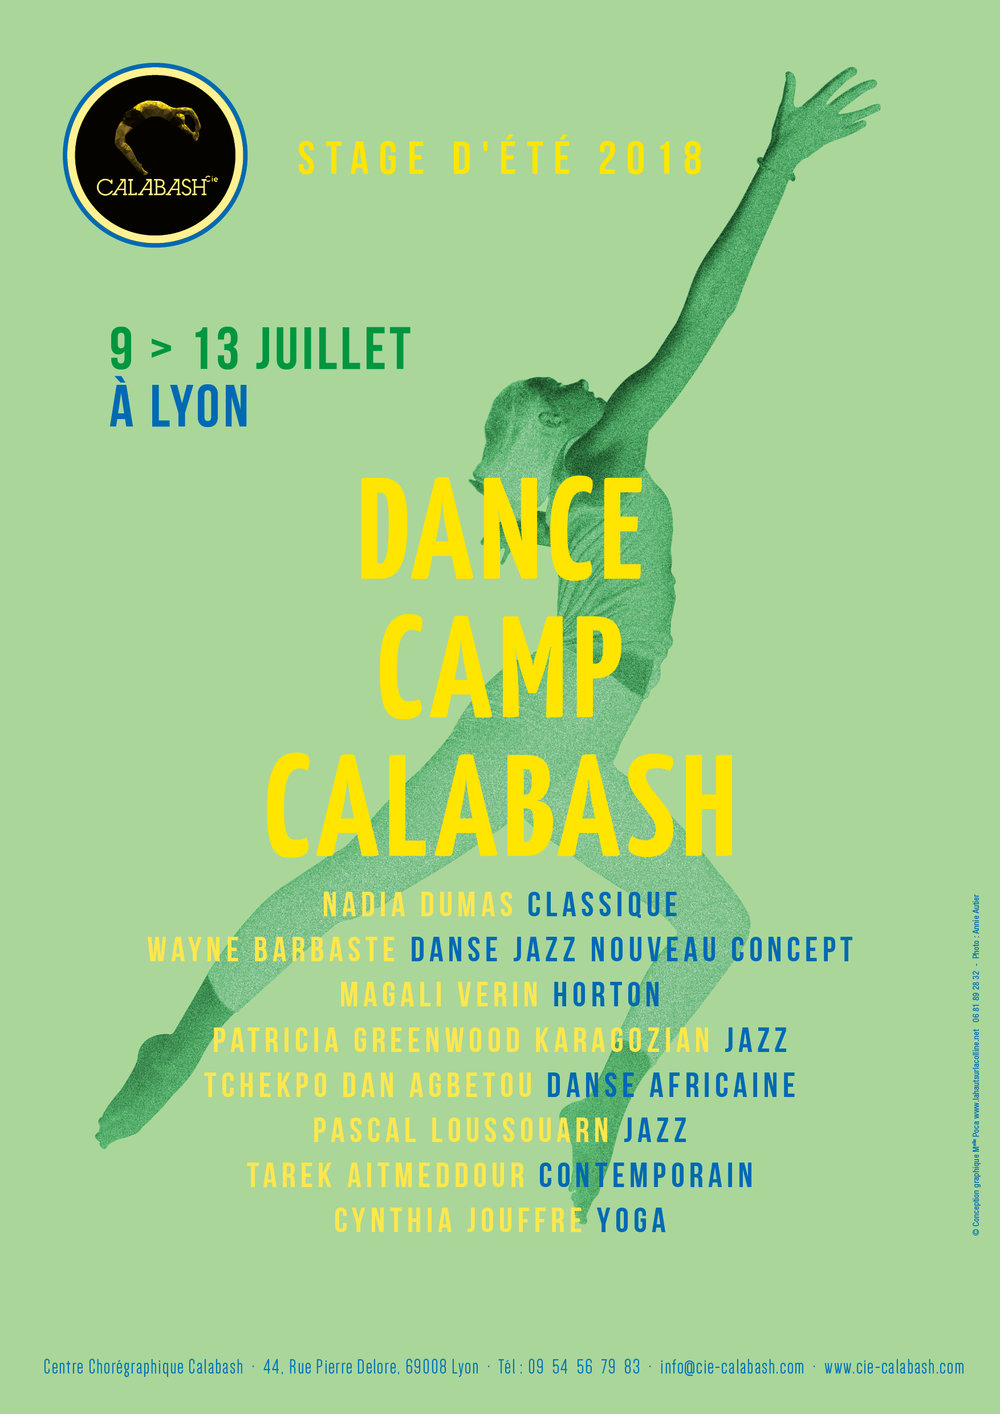 Calabash-Stageete-aout2017-A3-19032018.jpg